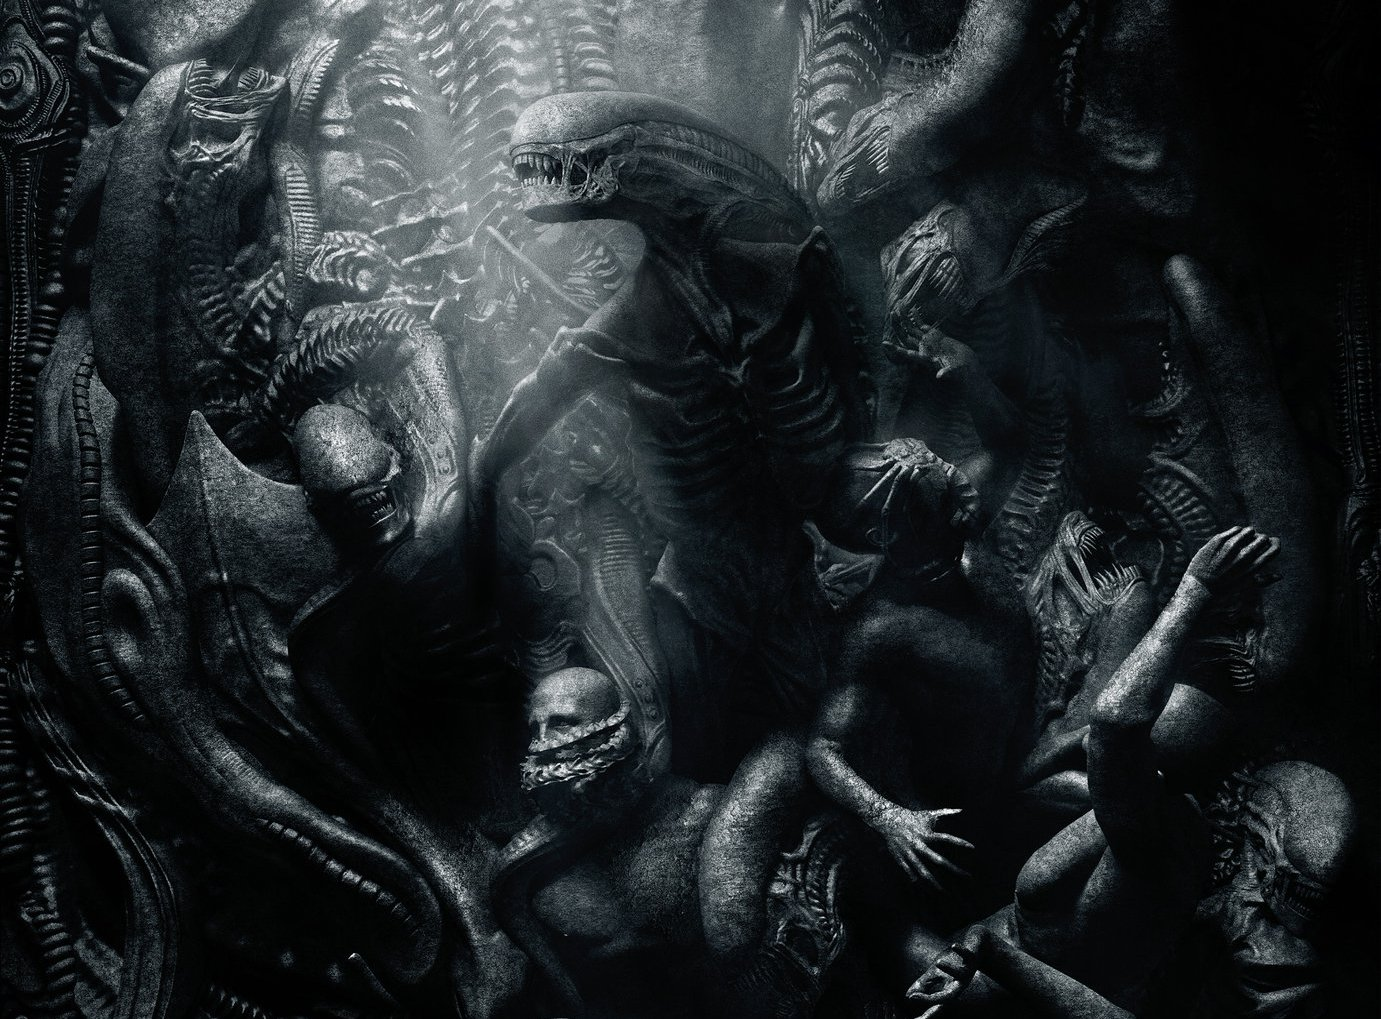 alien-covenant-fill_jpg_pagespeed_ic_rpycbs72kx.jpg